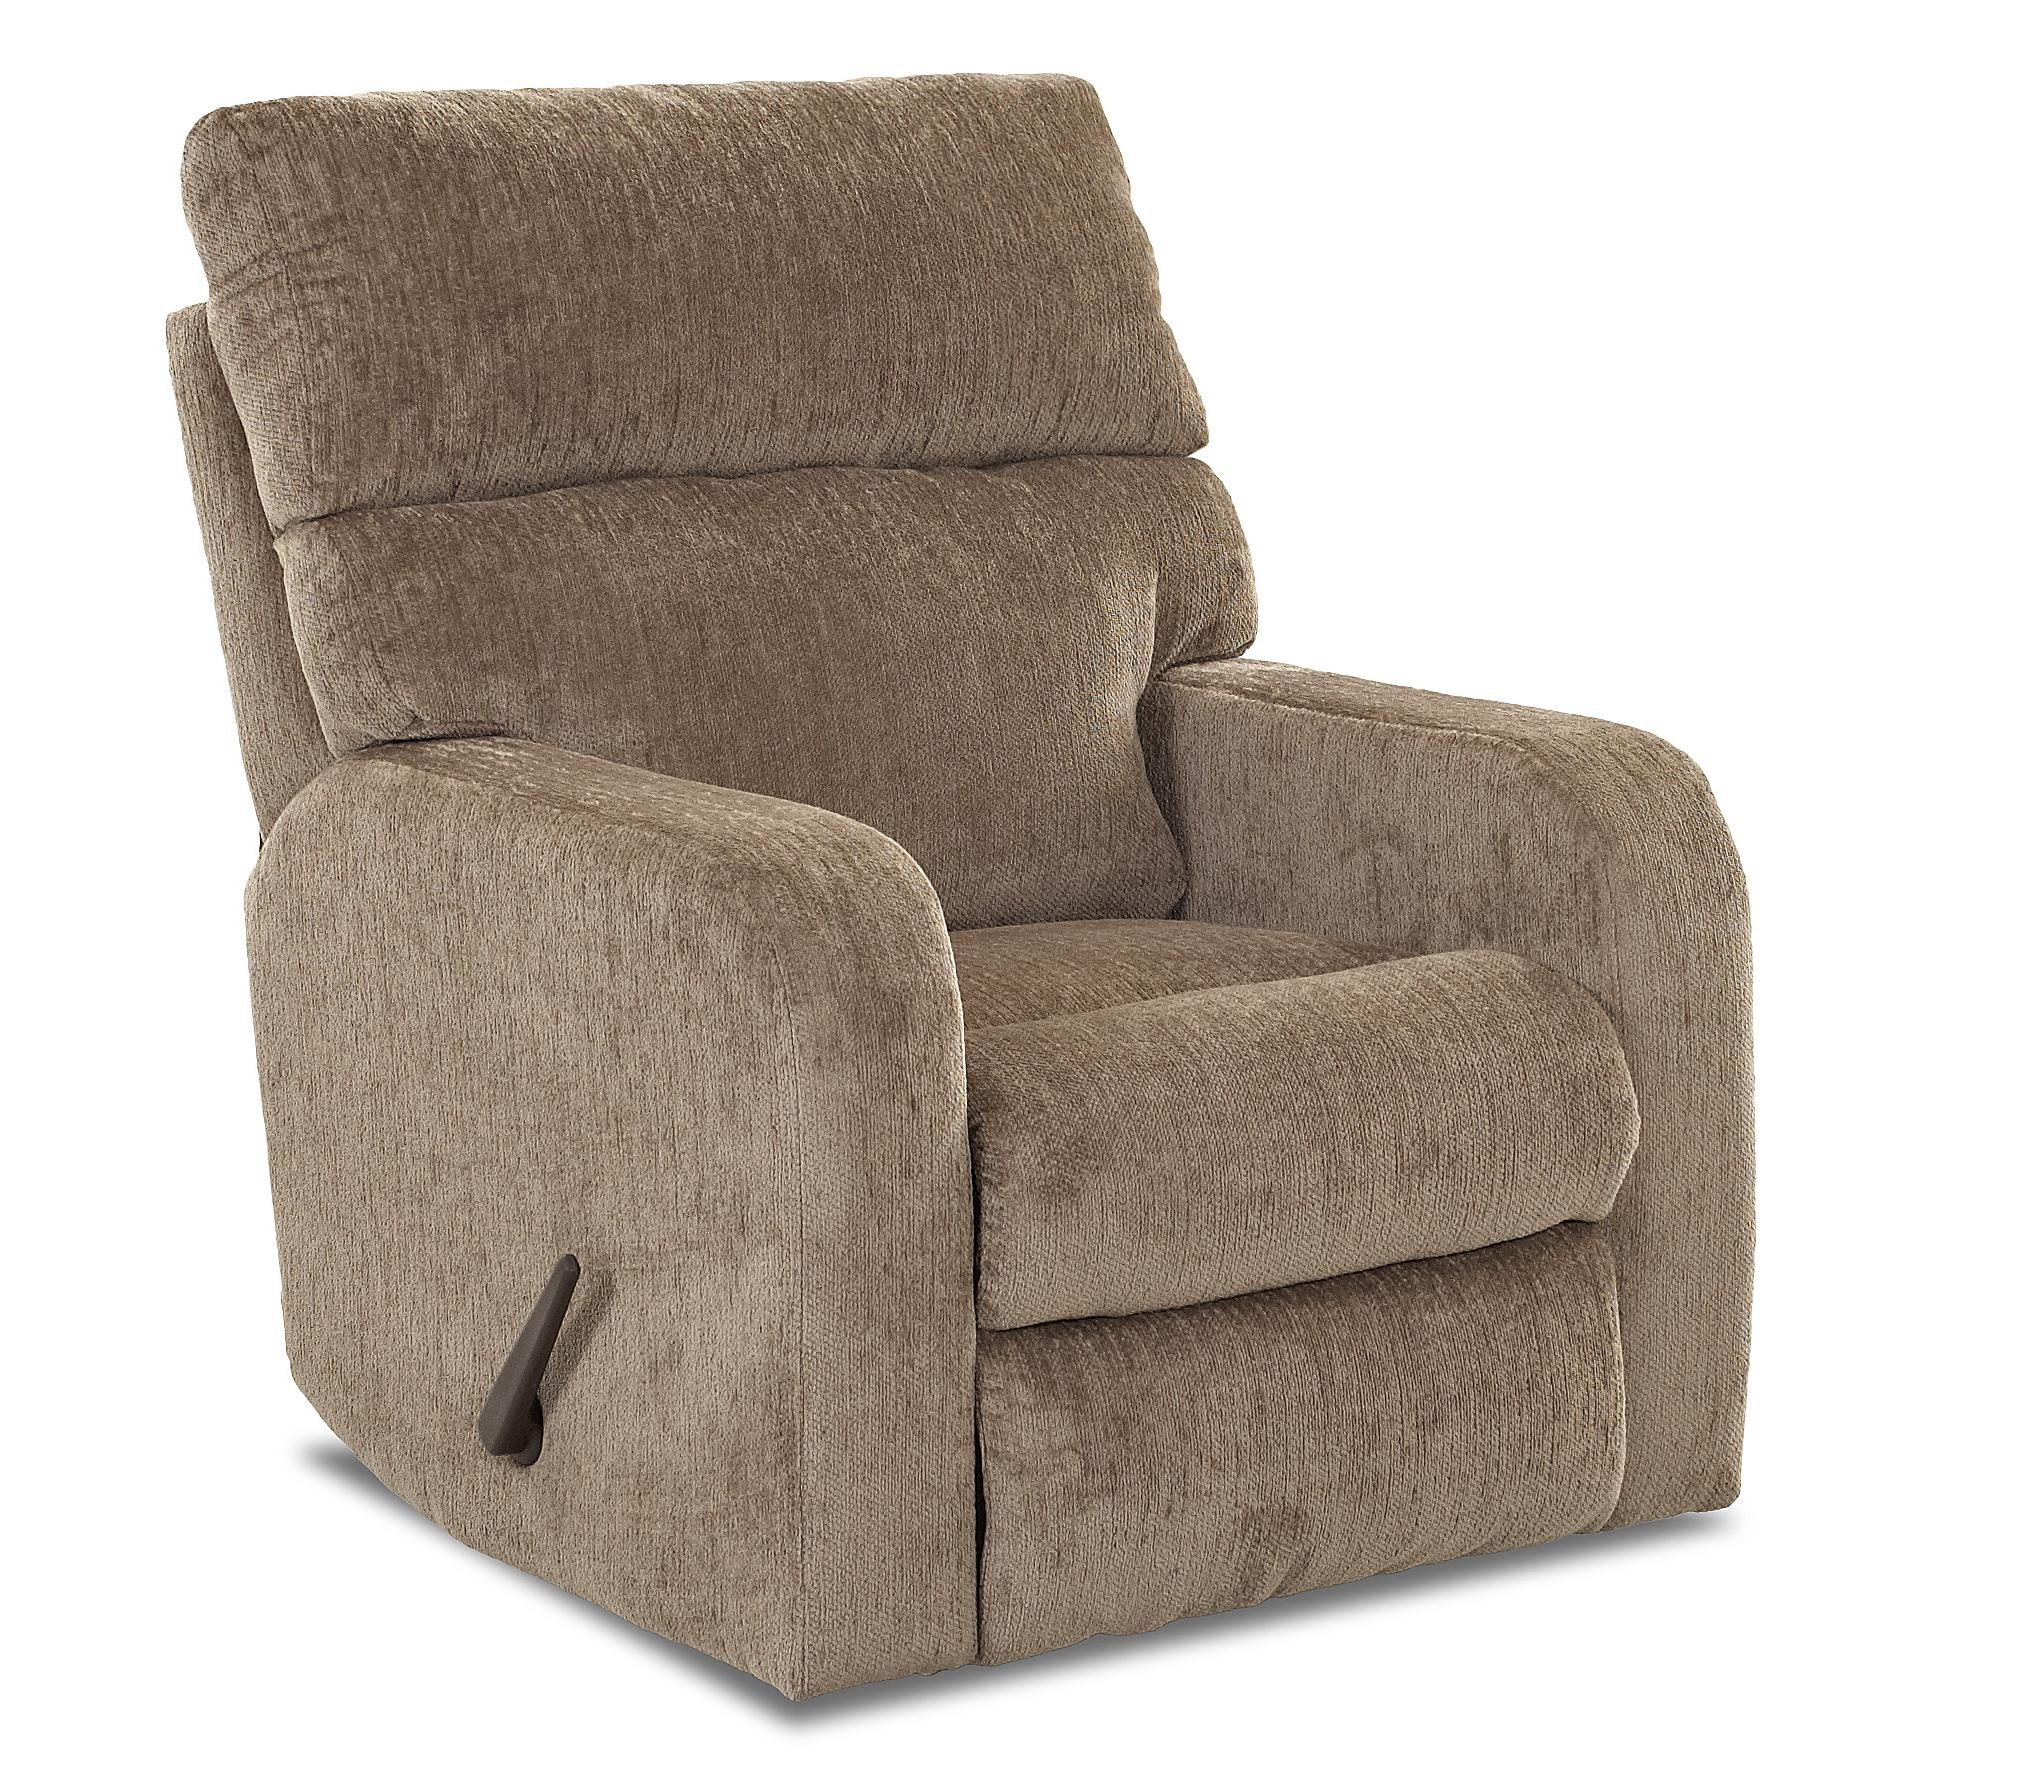 Casual Swivel Rocking Reclining Chair by Klaussner  Wolf